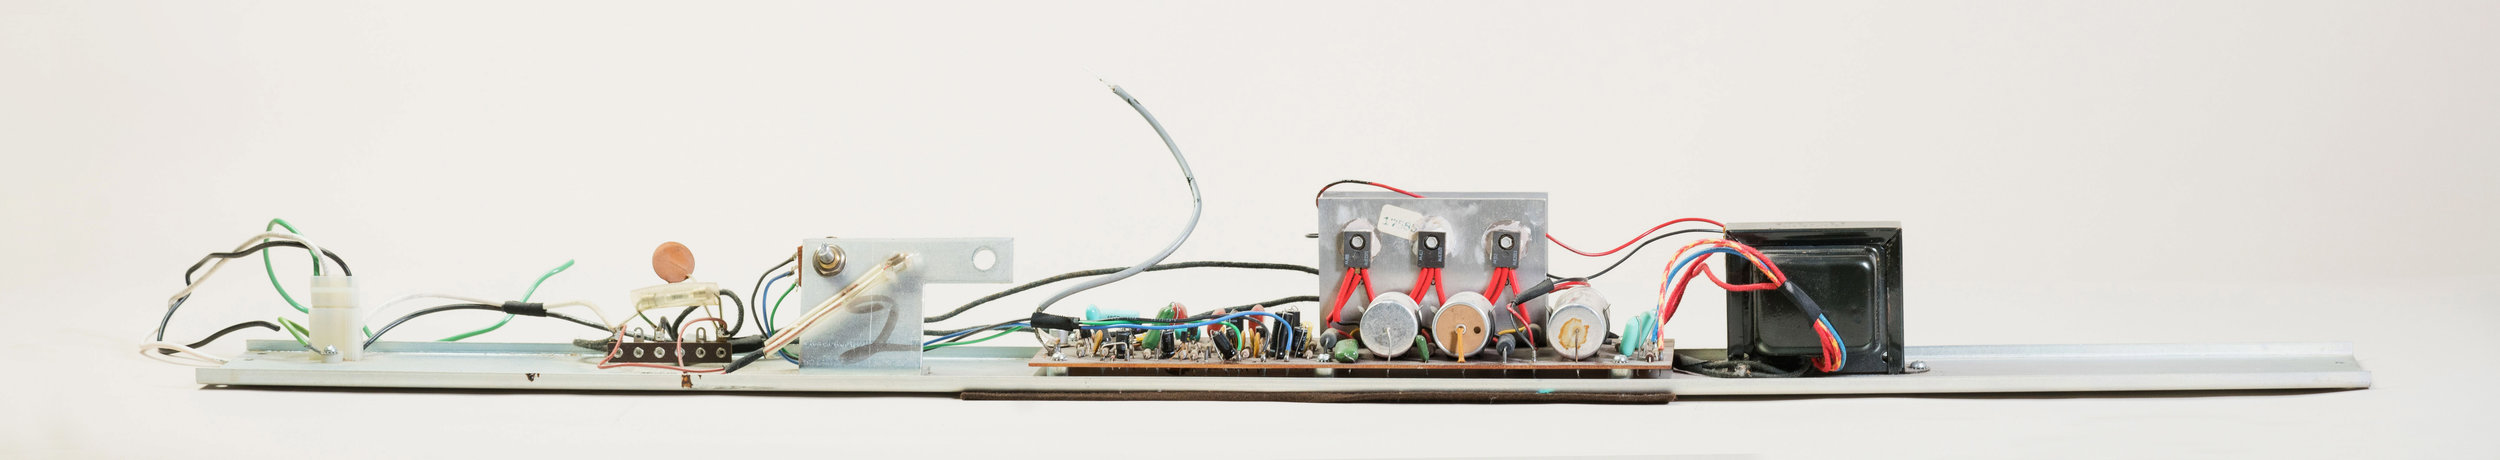 In the Wurlitzer 200, the power transformer is mounted on the right side of the amp rail, close to the rectifier. However, the mains wiring and the power switch are mounted on the left side of the amp rail. For this reason, the black transformer wires are extremely long in this amp, and must travel past the preamp area. Make sure they're not too close to any sensitive preamp components.